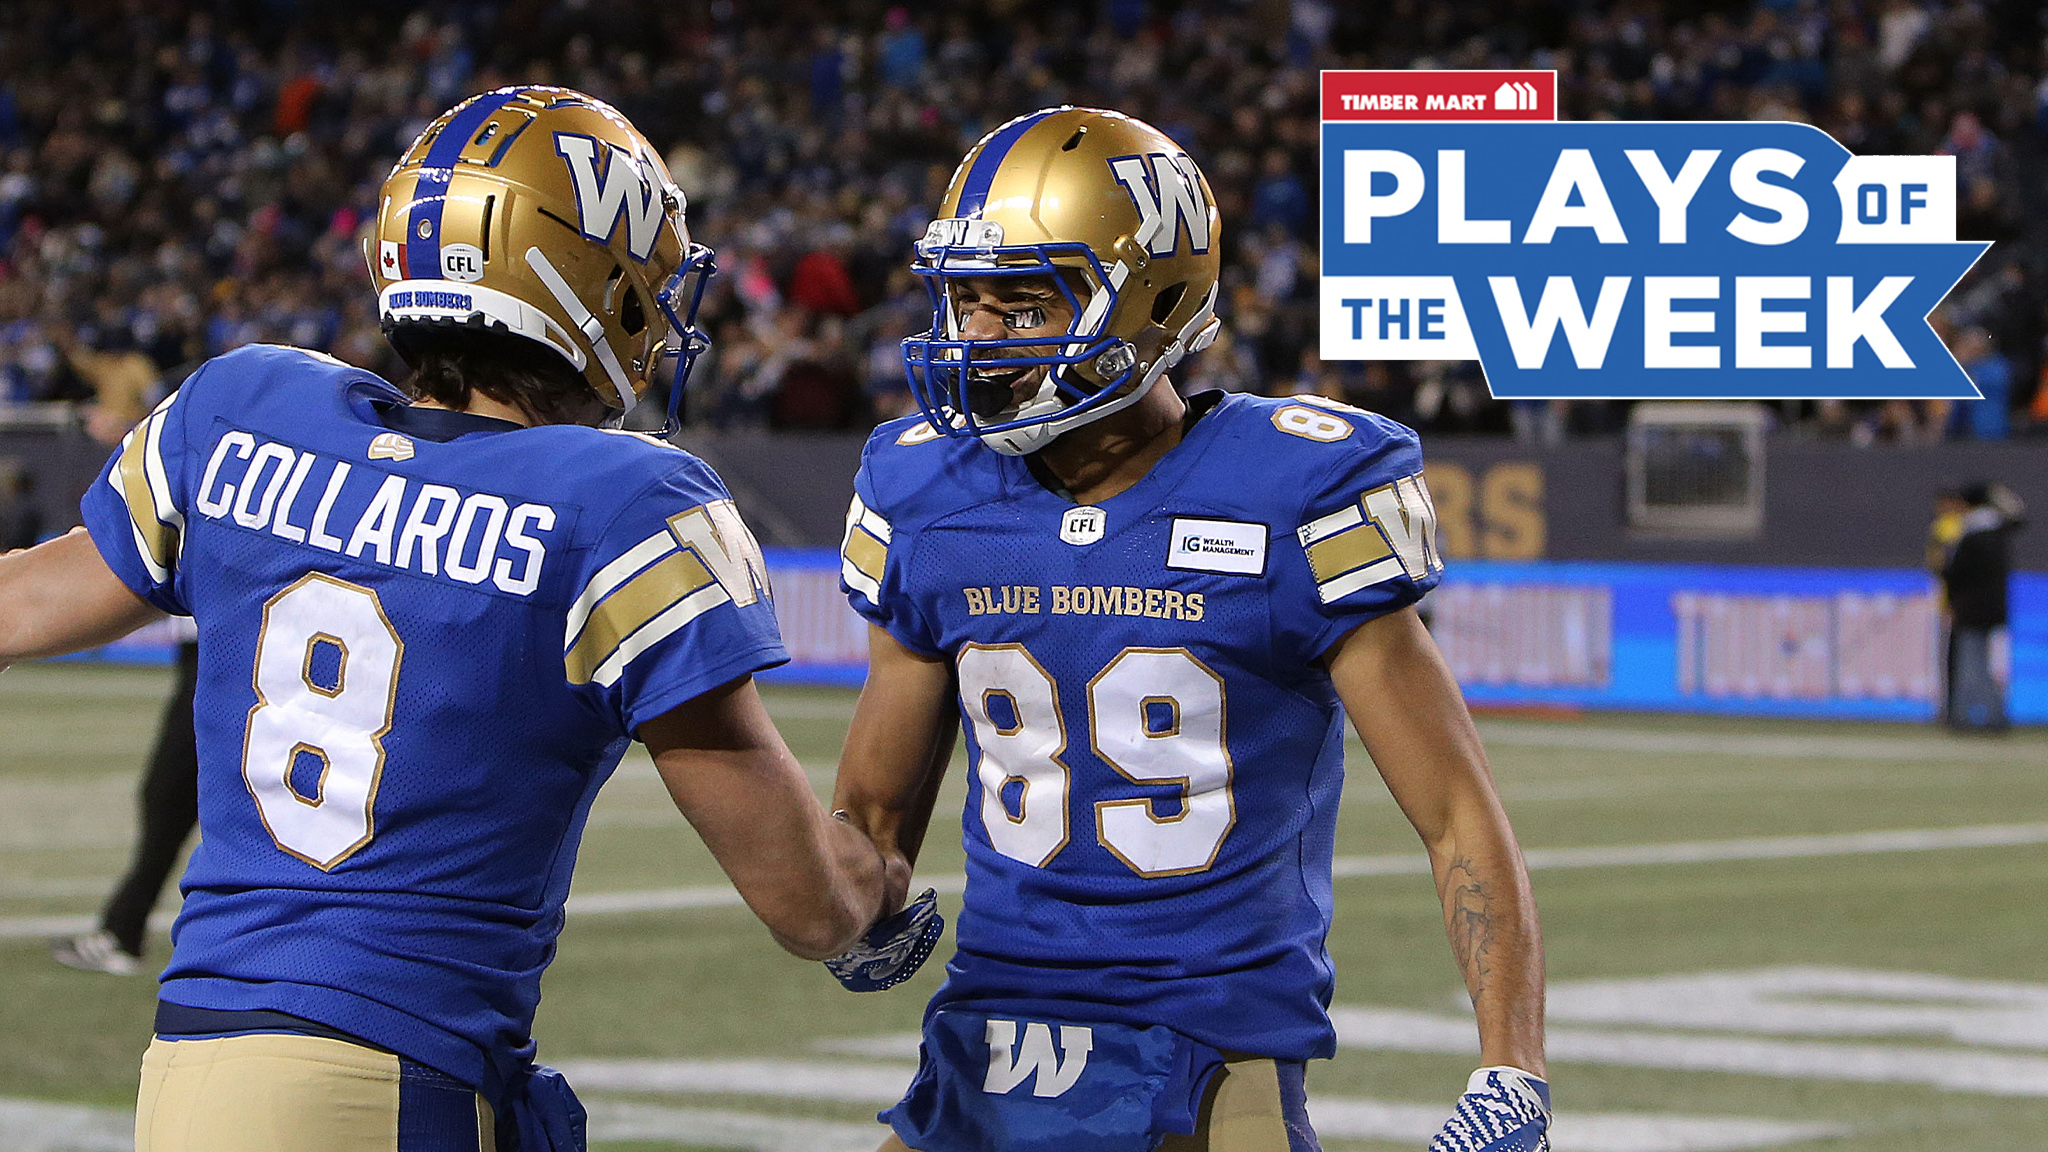 Bombers dominate Timber Mart Plays of the Week